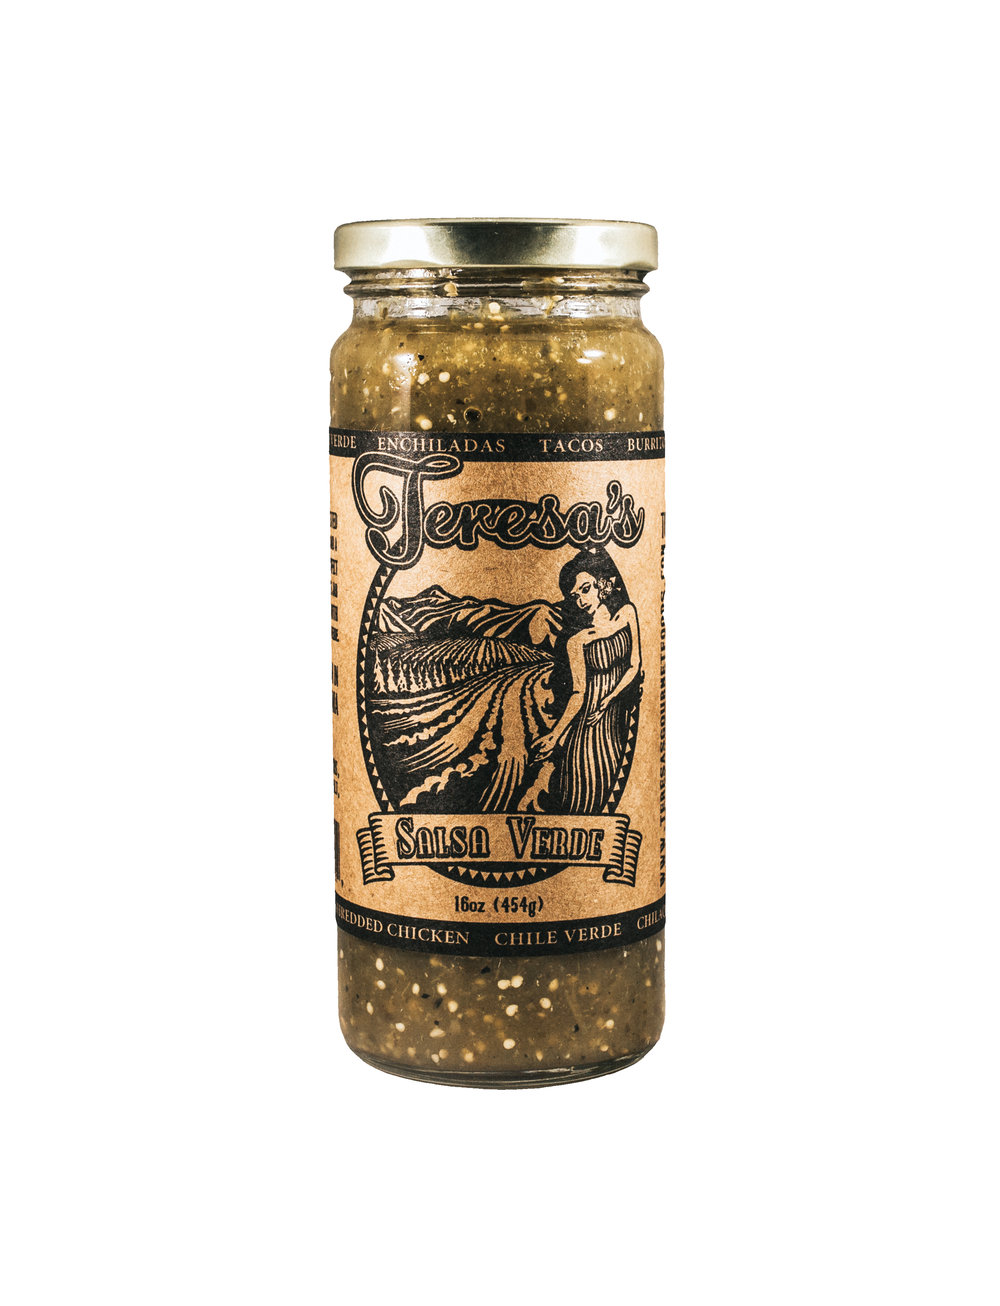 Salsa Verde - A delicious blend of roasted tomatillos, charred jalapeños, and a mix of special spices make a perfect salsa to serve straight out of the jar with chips. The verde can also be used to make enchiladas, posole verde, or slow-cooked with chicken or pork.